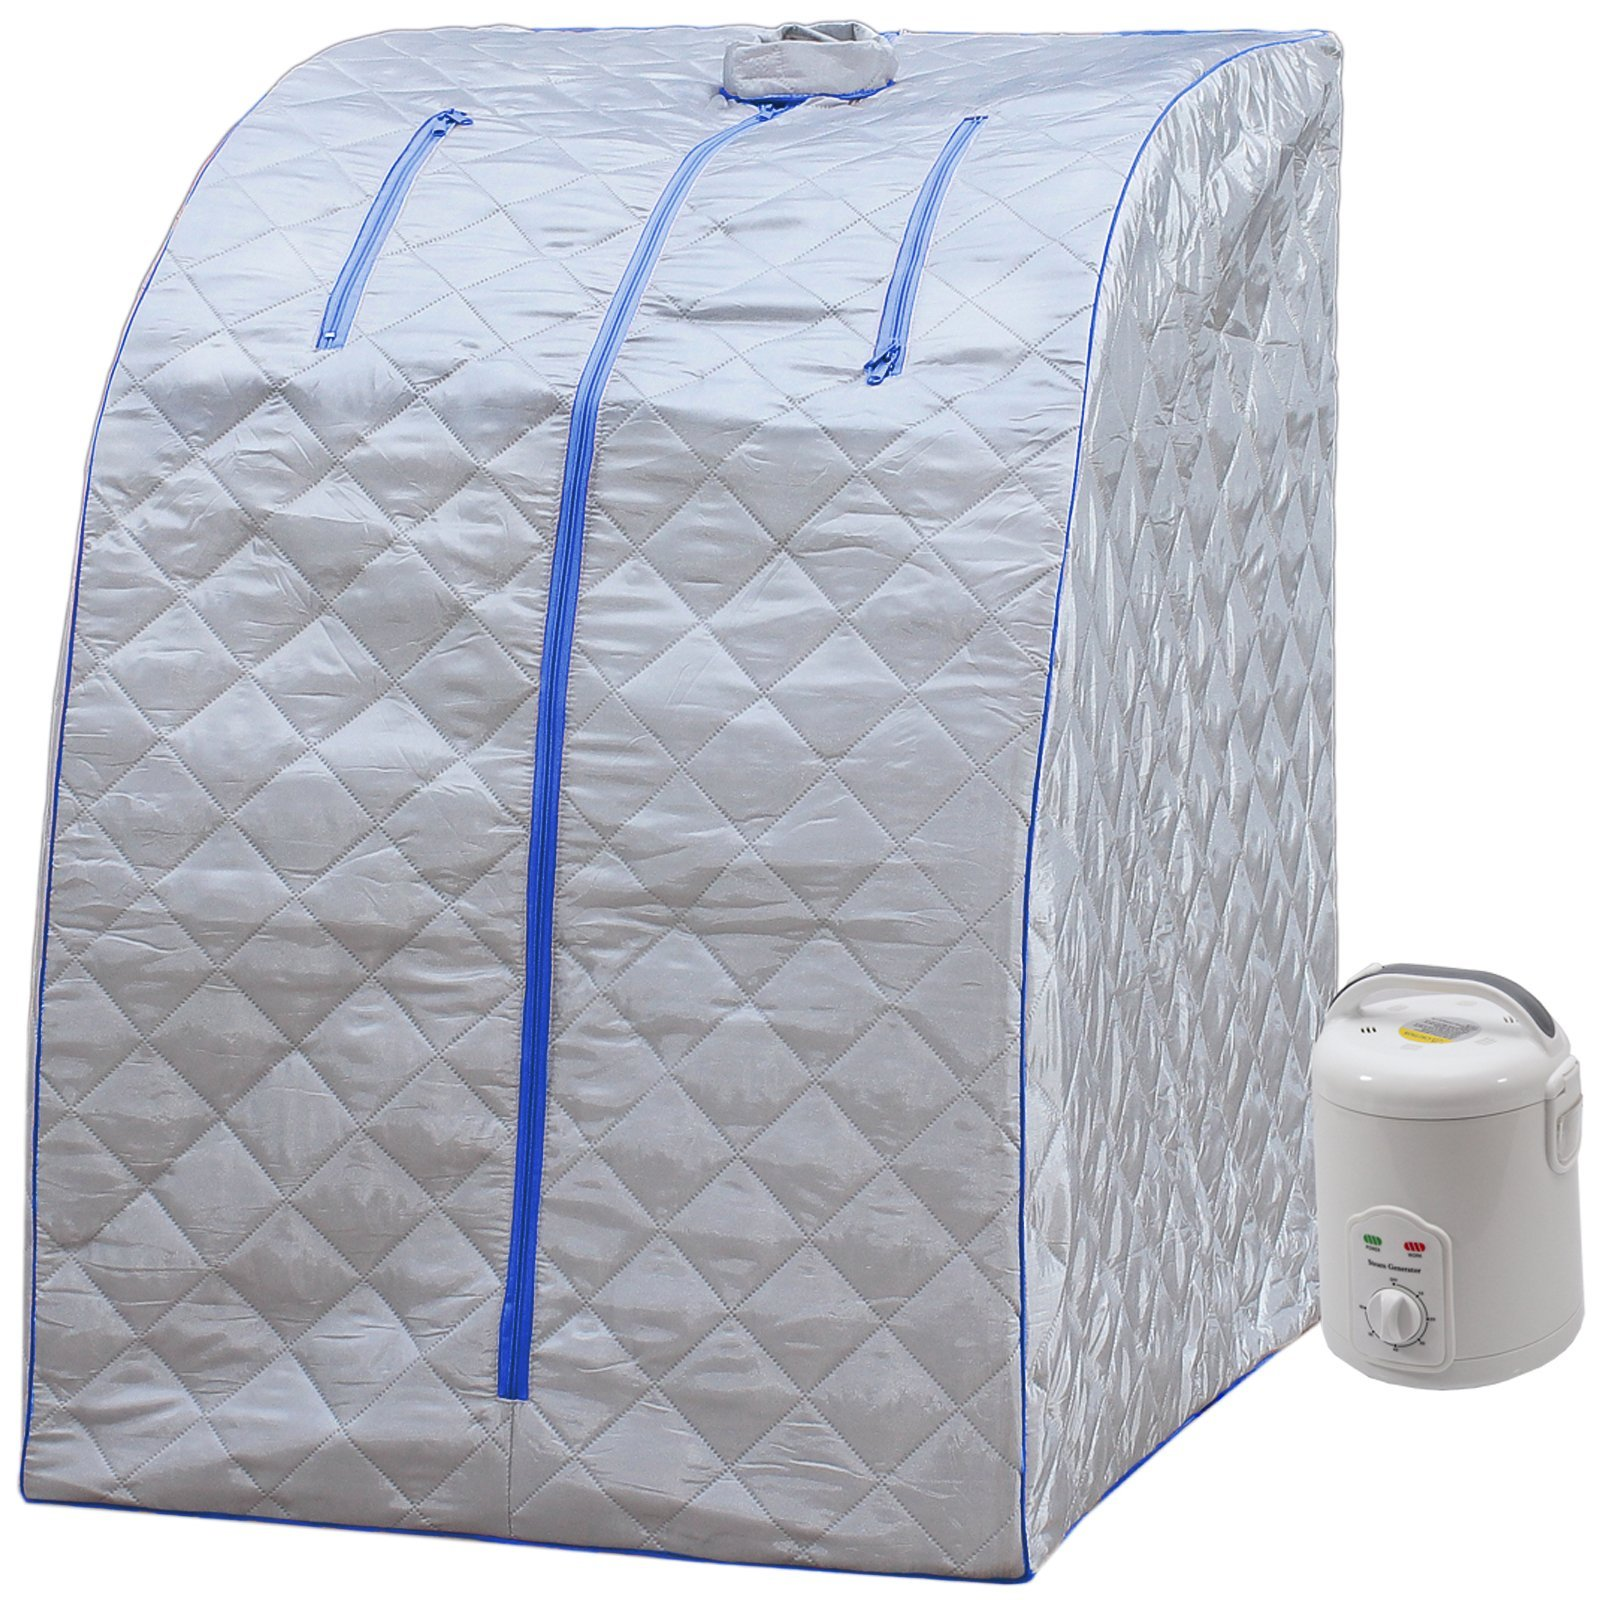 Durherm Portable Personal Folding Home Steam Sauna (Blue Outline)